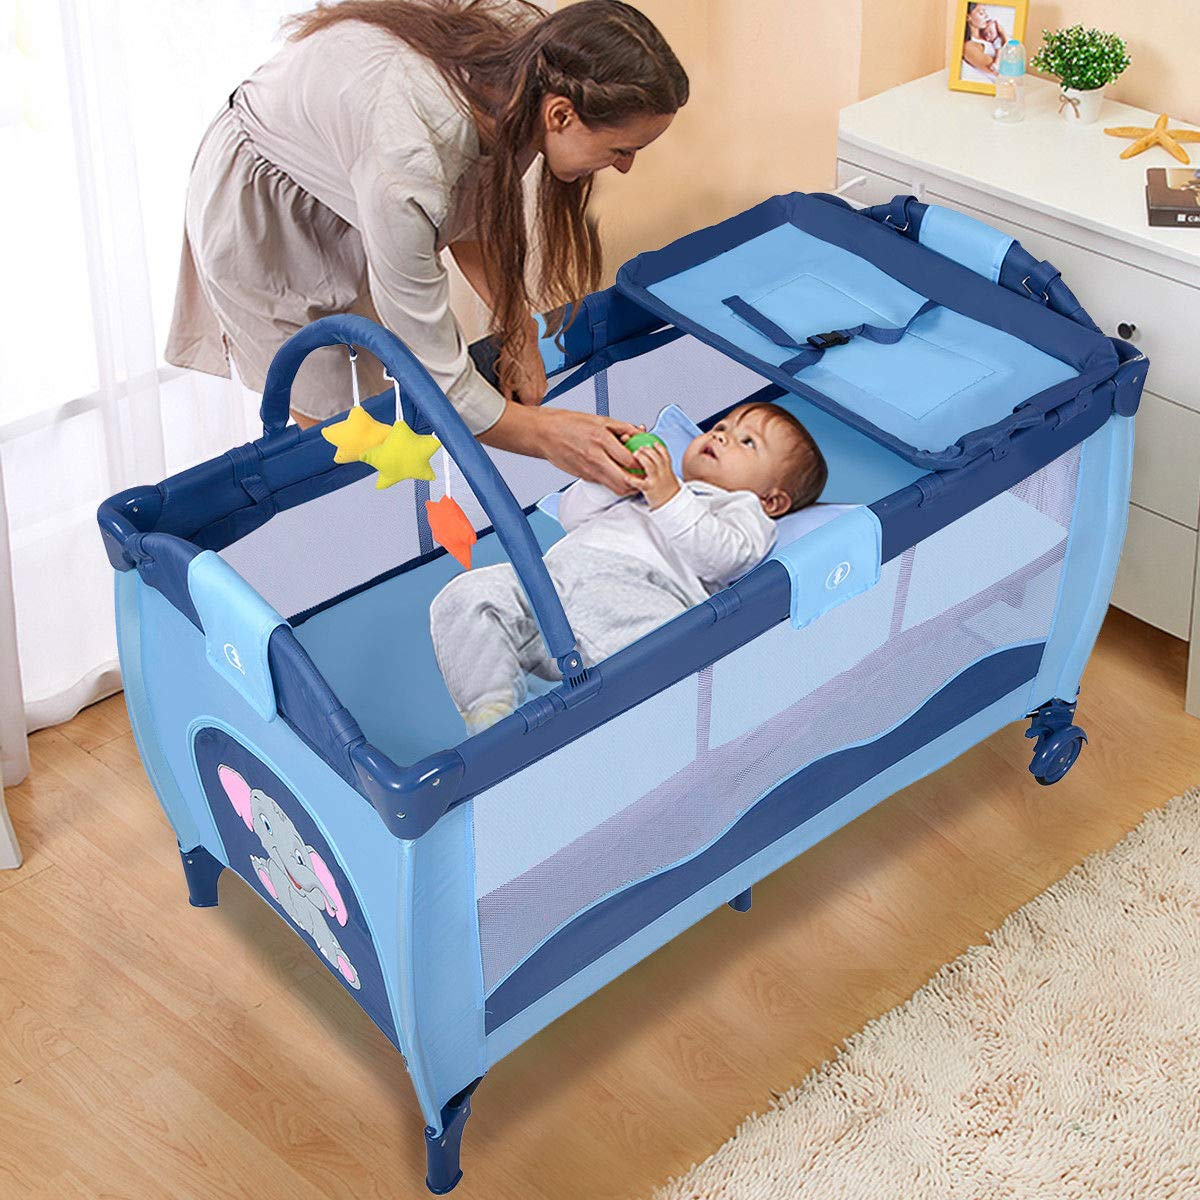 Toddler Baby Crib Playard Pack Playpen Bassinet Travel Infant Bed Portable Foldable by WealthyPlaza (Image #2)